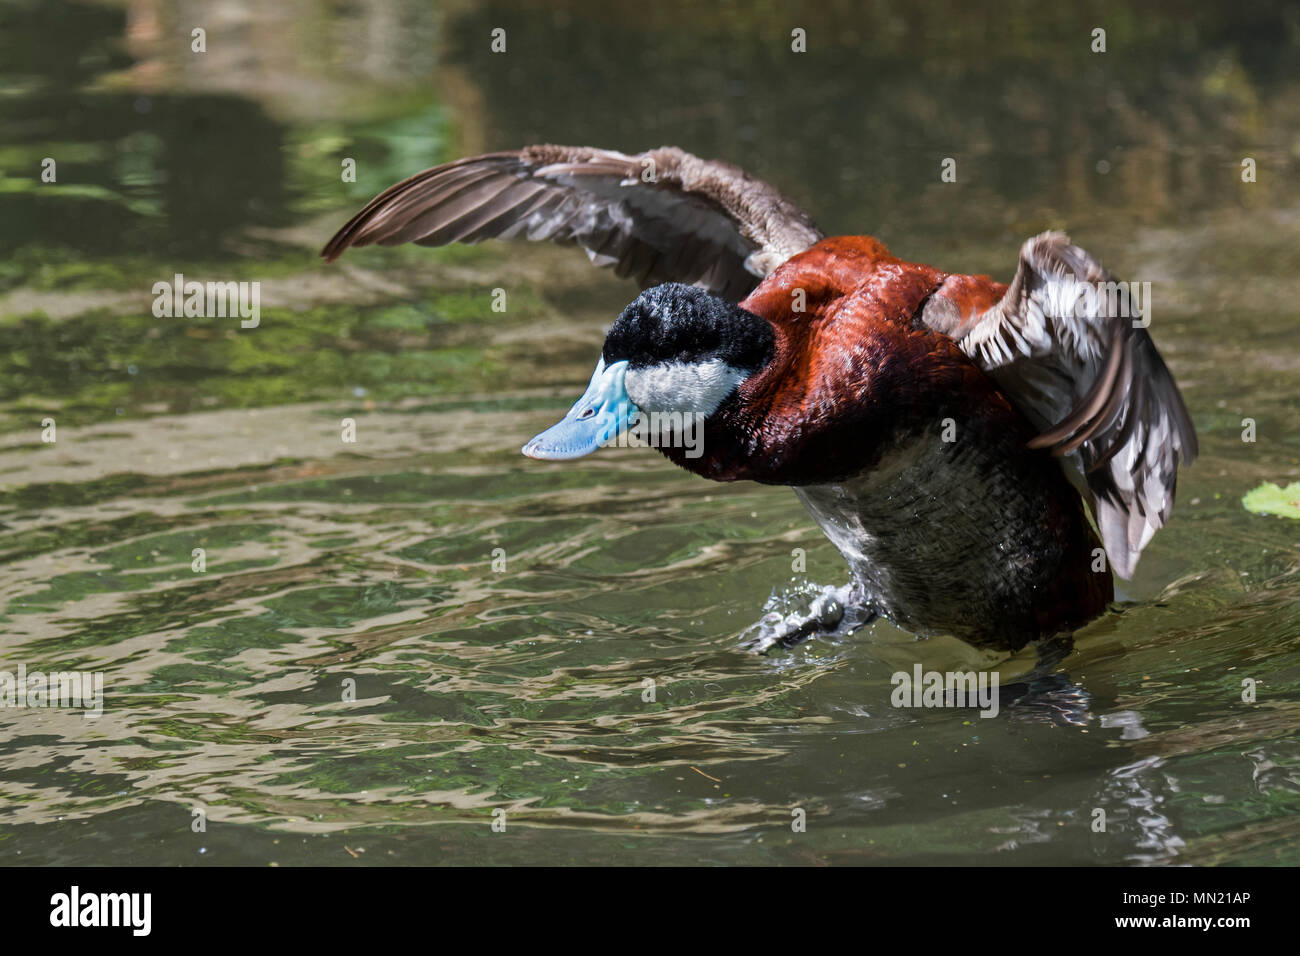 Ruddy duck (Oxyura jamaicensis) male flapping wings in pond, stiff-tailed duck native to North America - Stock Image